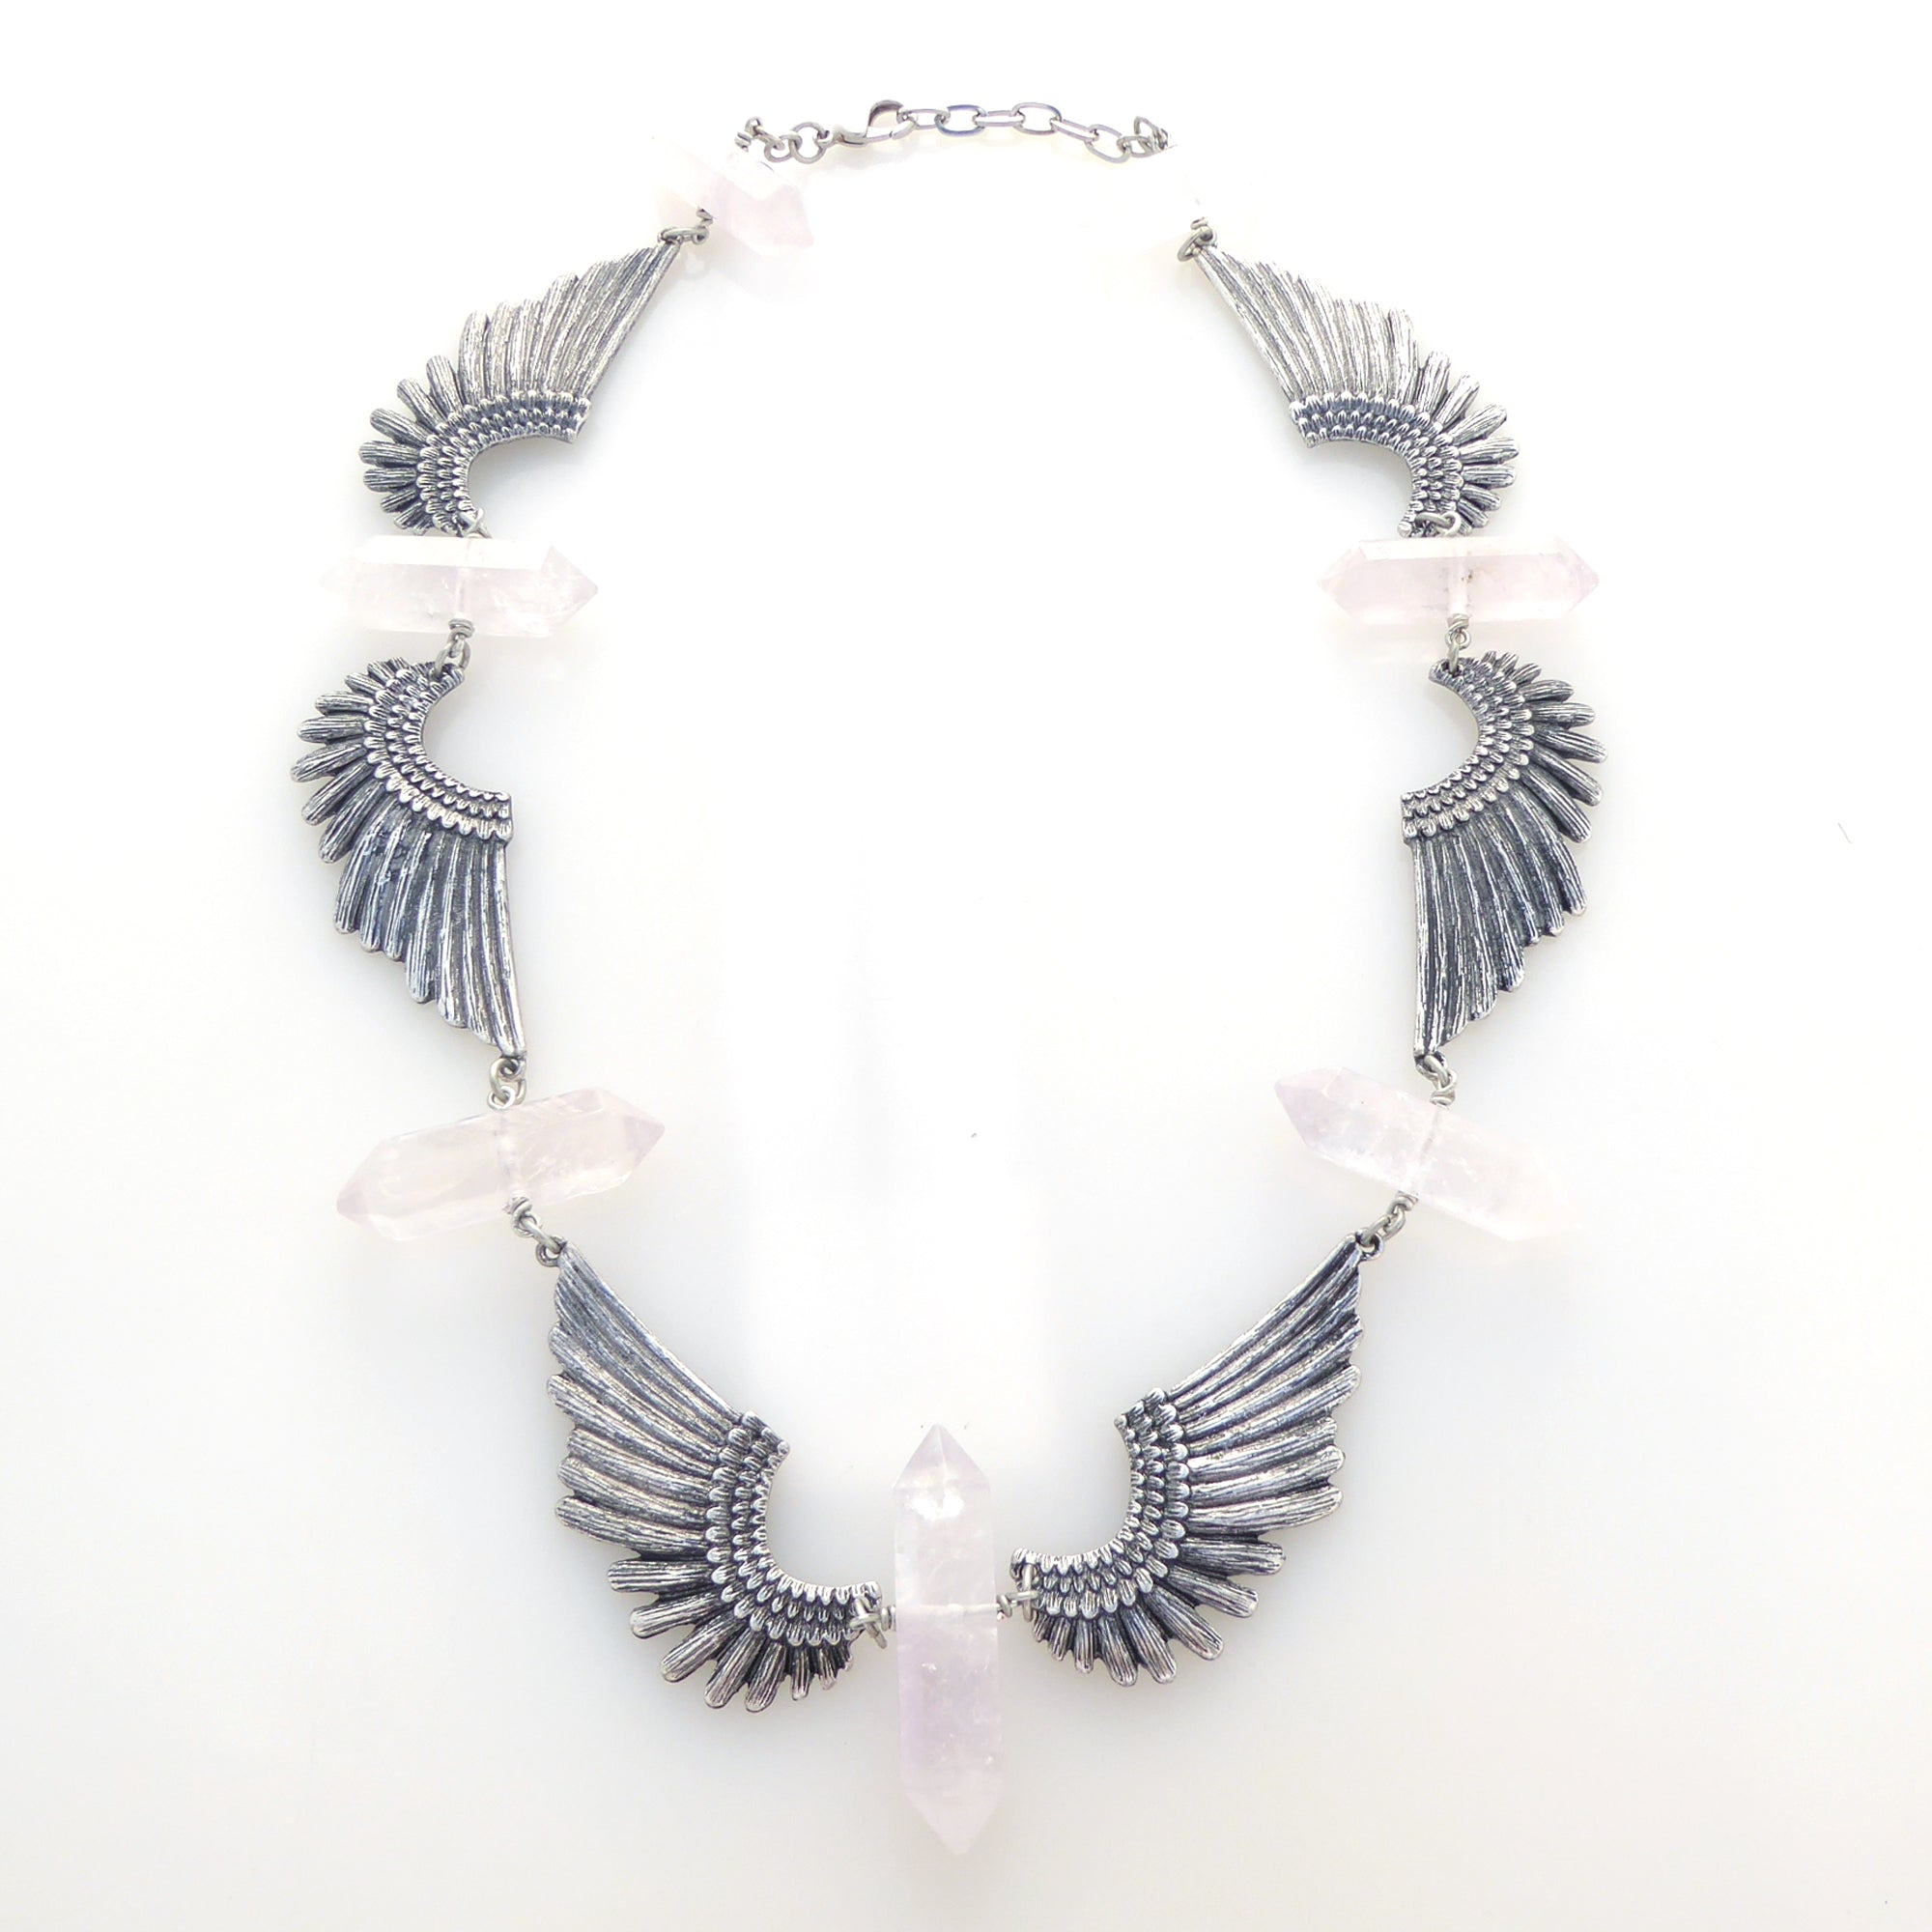 Parendi wing quartz necklace